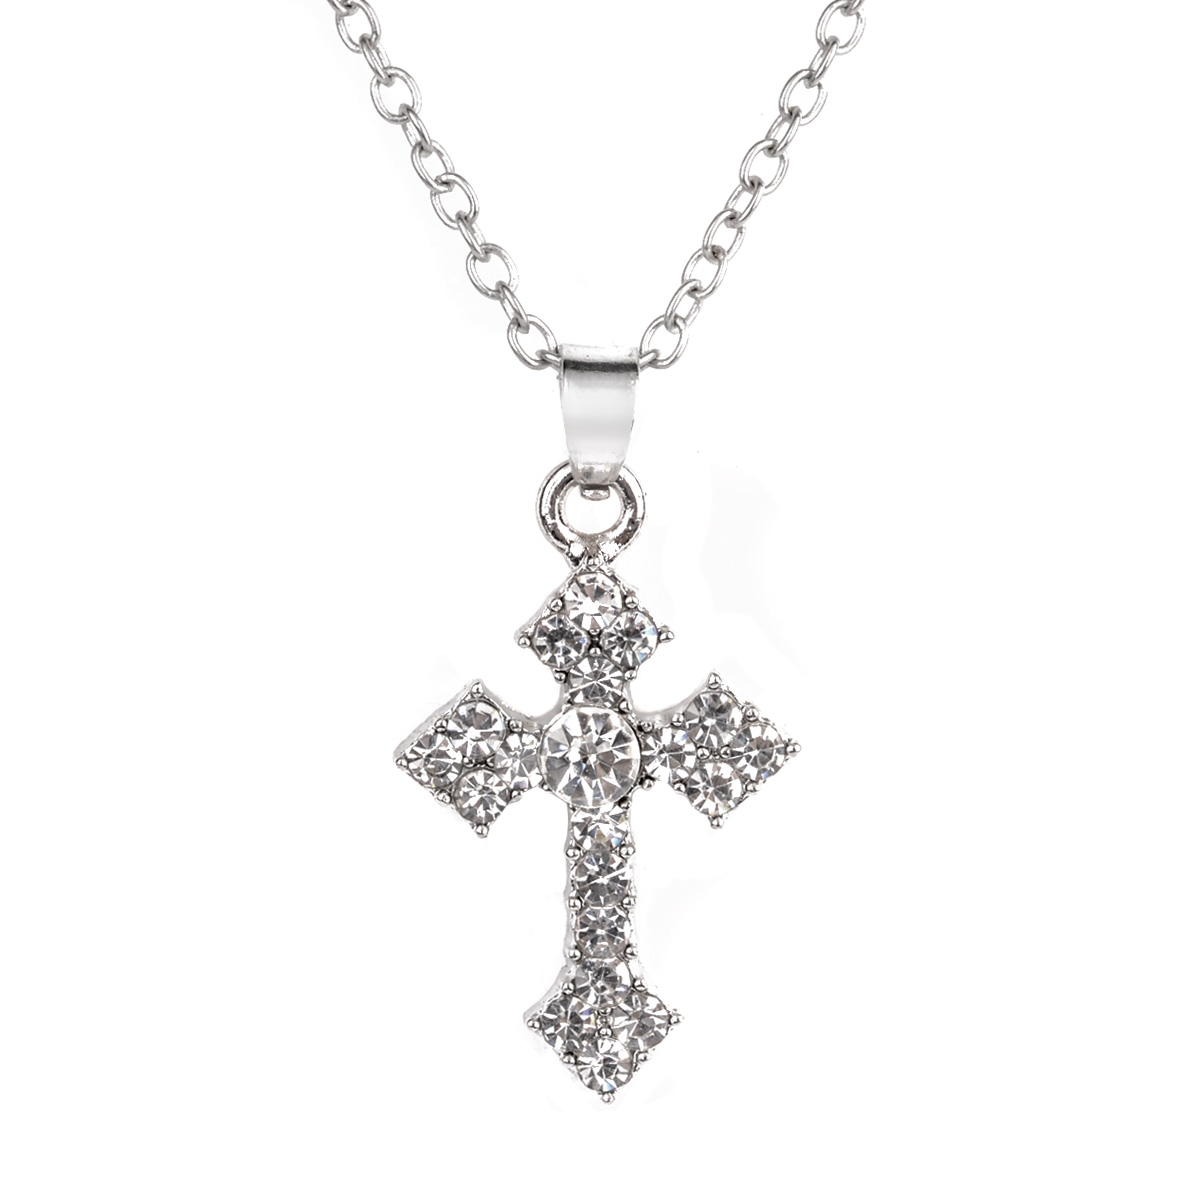 Vintage Silver Pated Chain Collares Statement Necklace Shellhard Crystal Rhinestone Cross Pendant Necklace For Women Jewelry